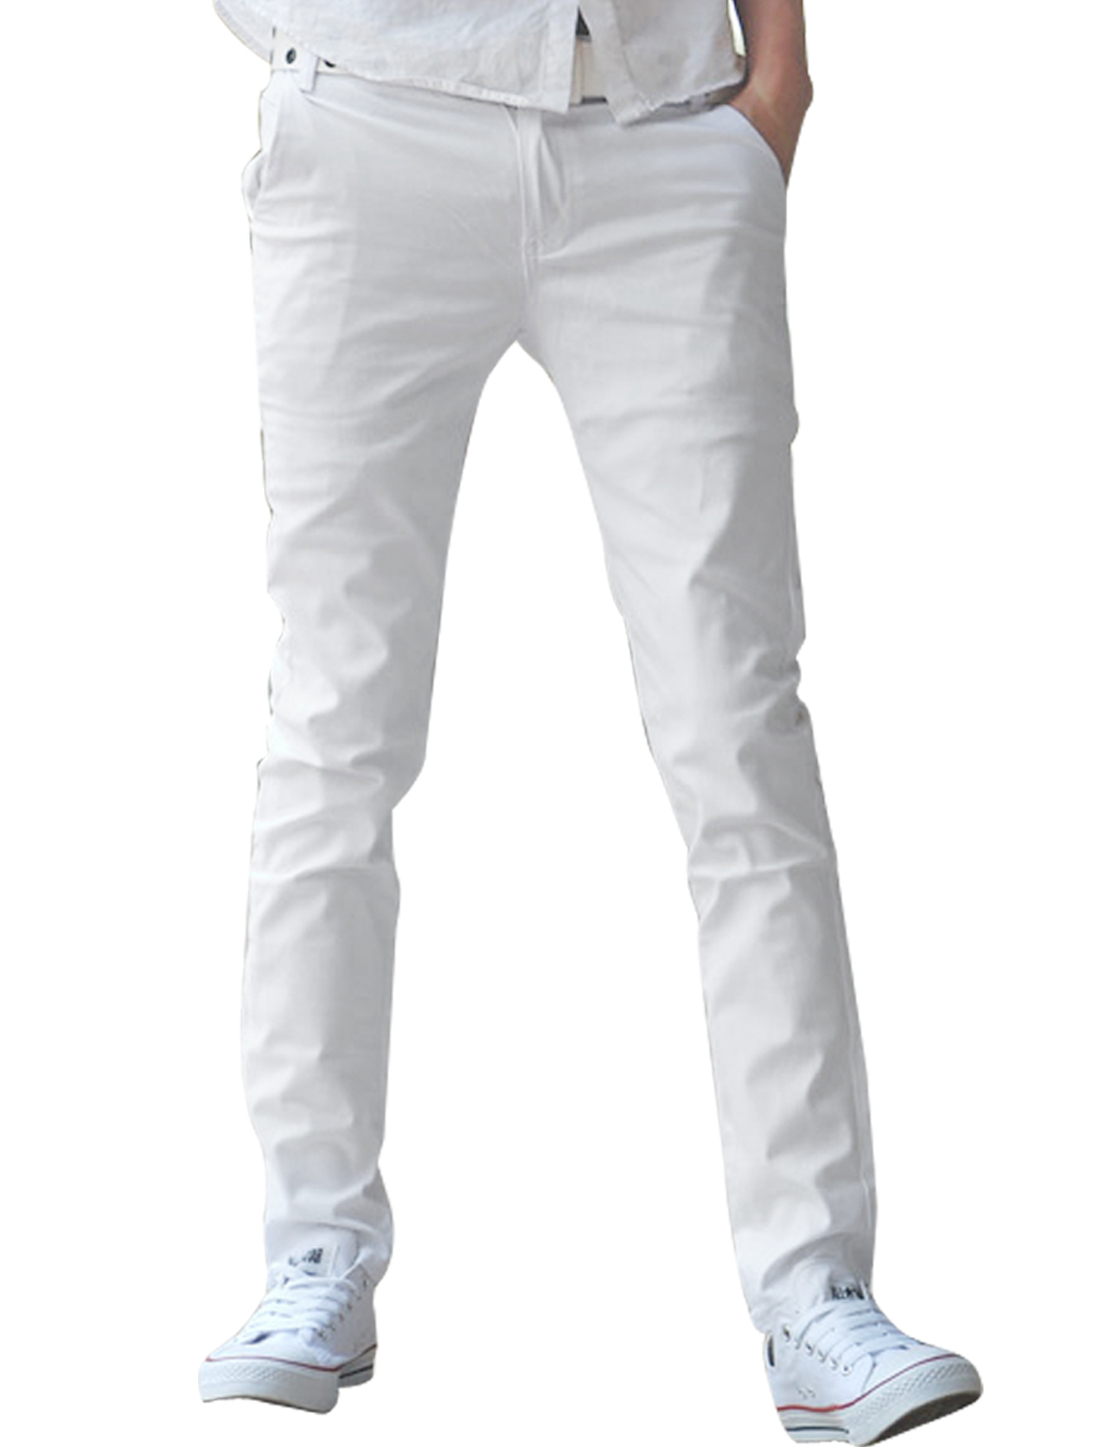 Mens Korea White Casual Zip Fly NEW Stylish Slim Fit Straight Trousers W30